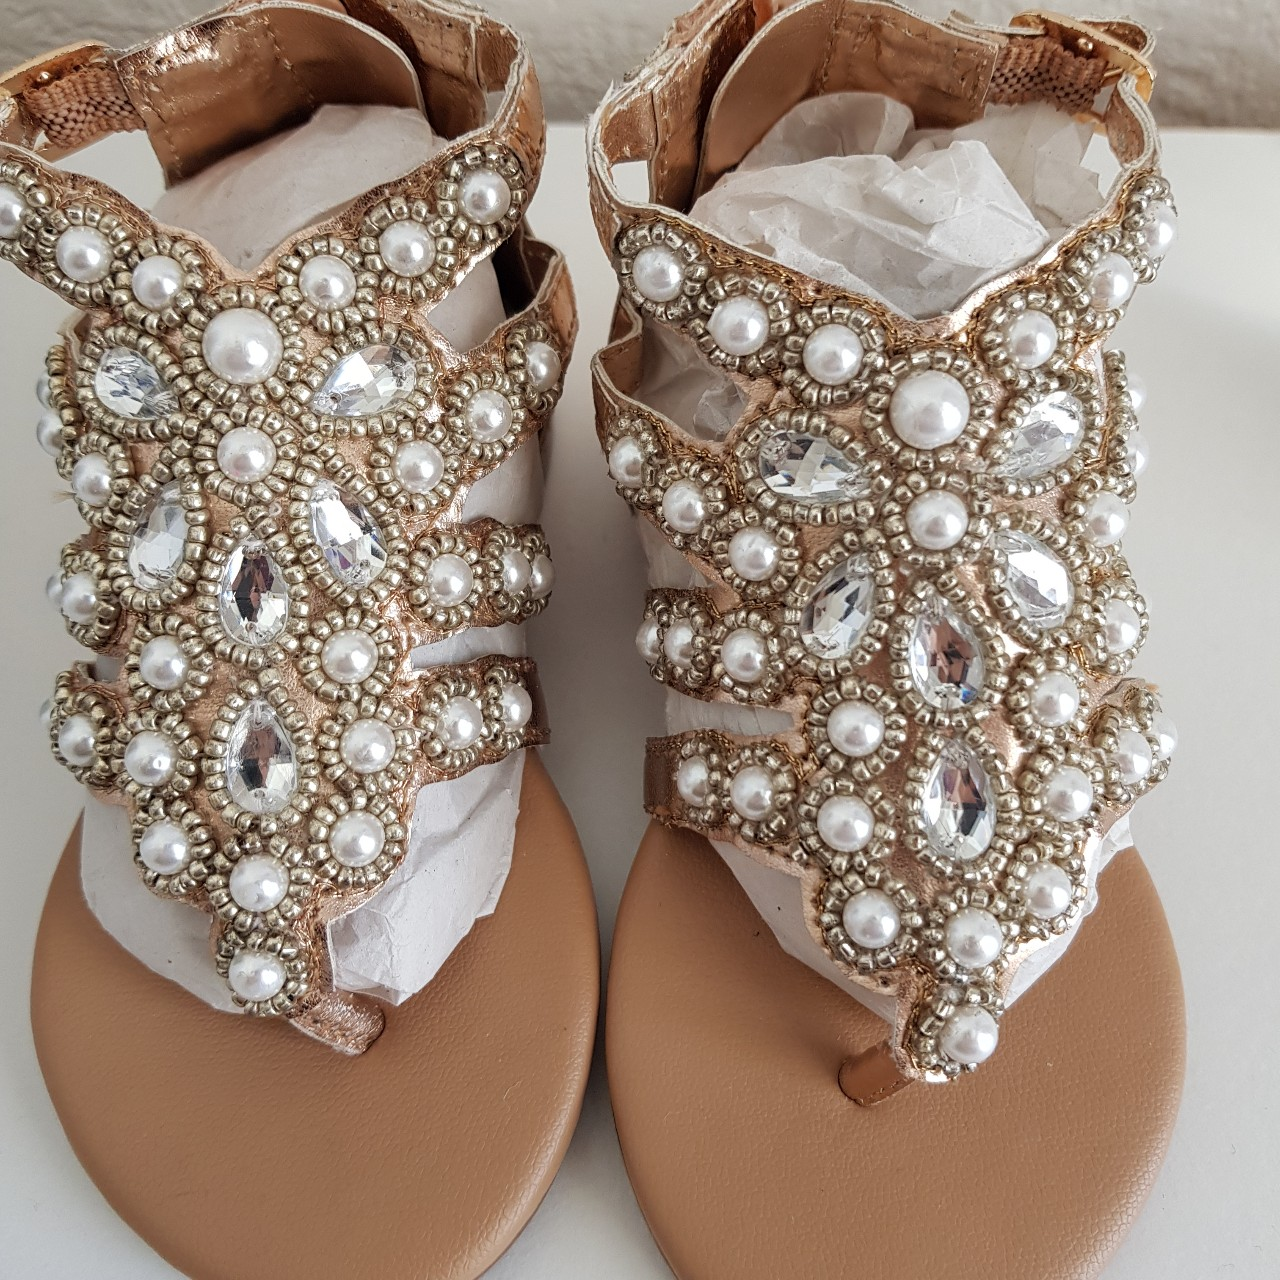 River island baby girl sandals size 5